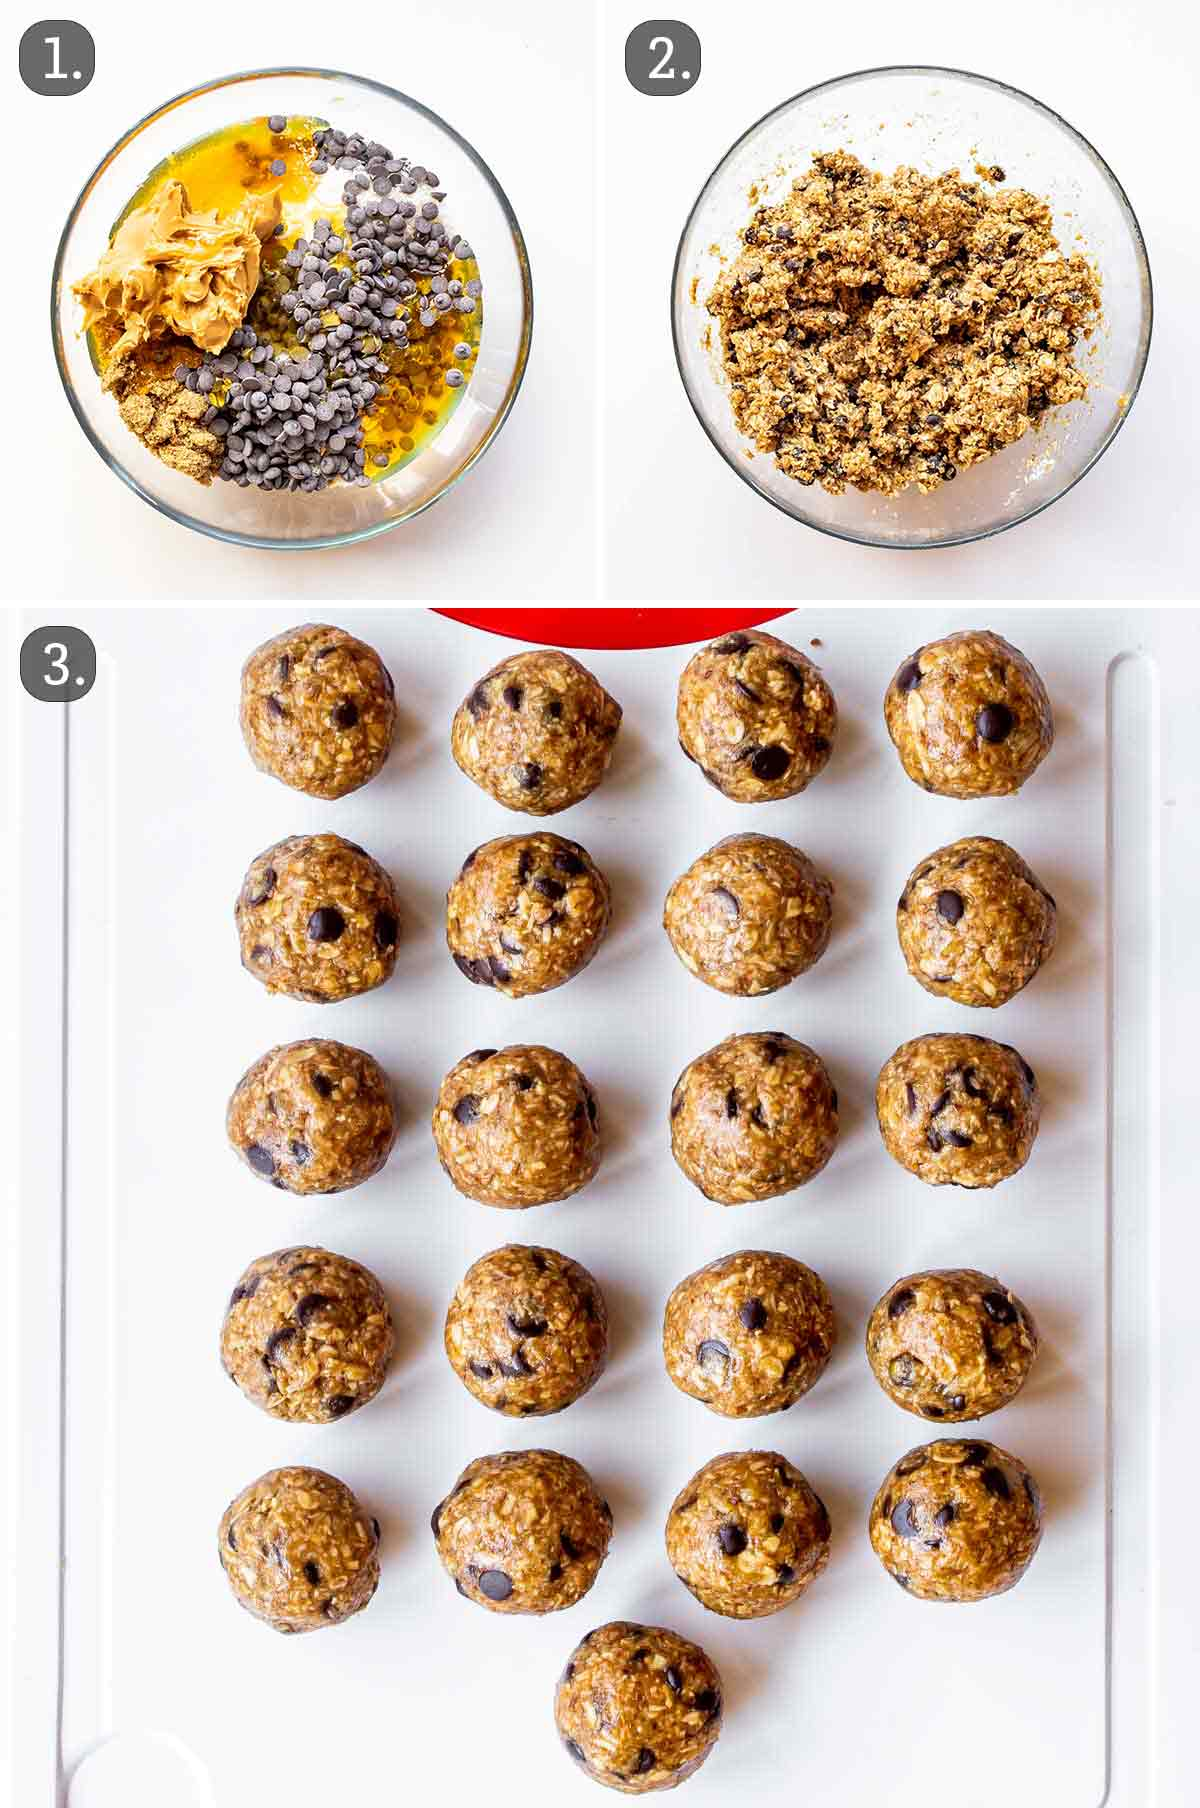 process shots showing how to make no bake energy bites.